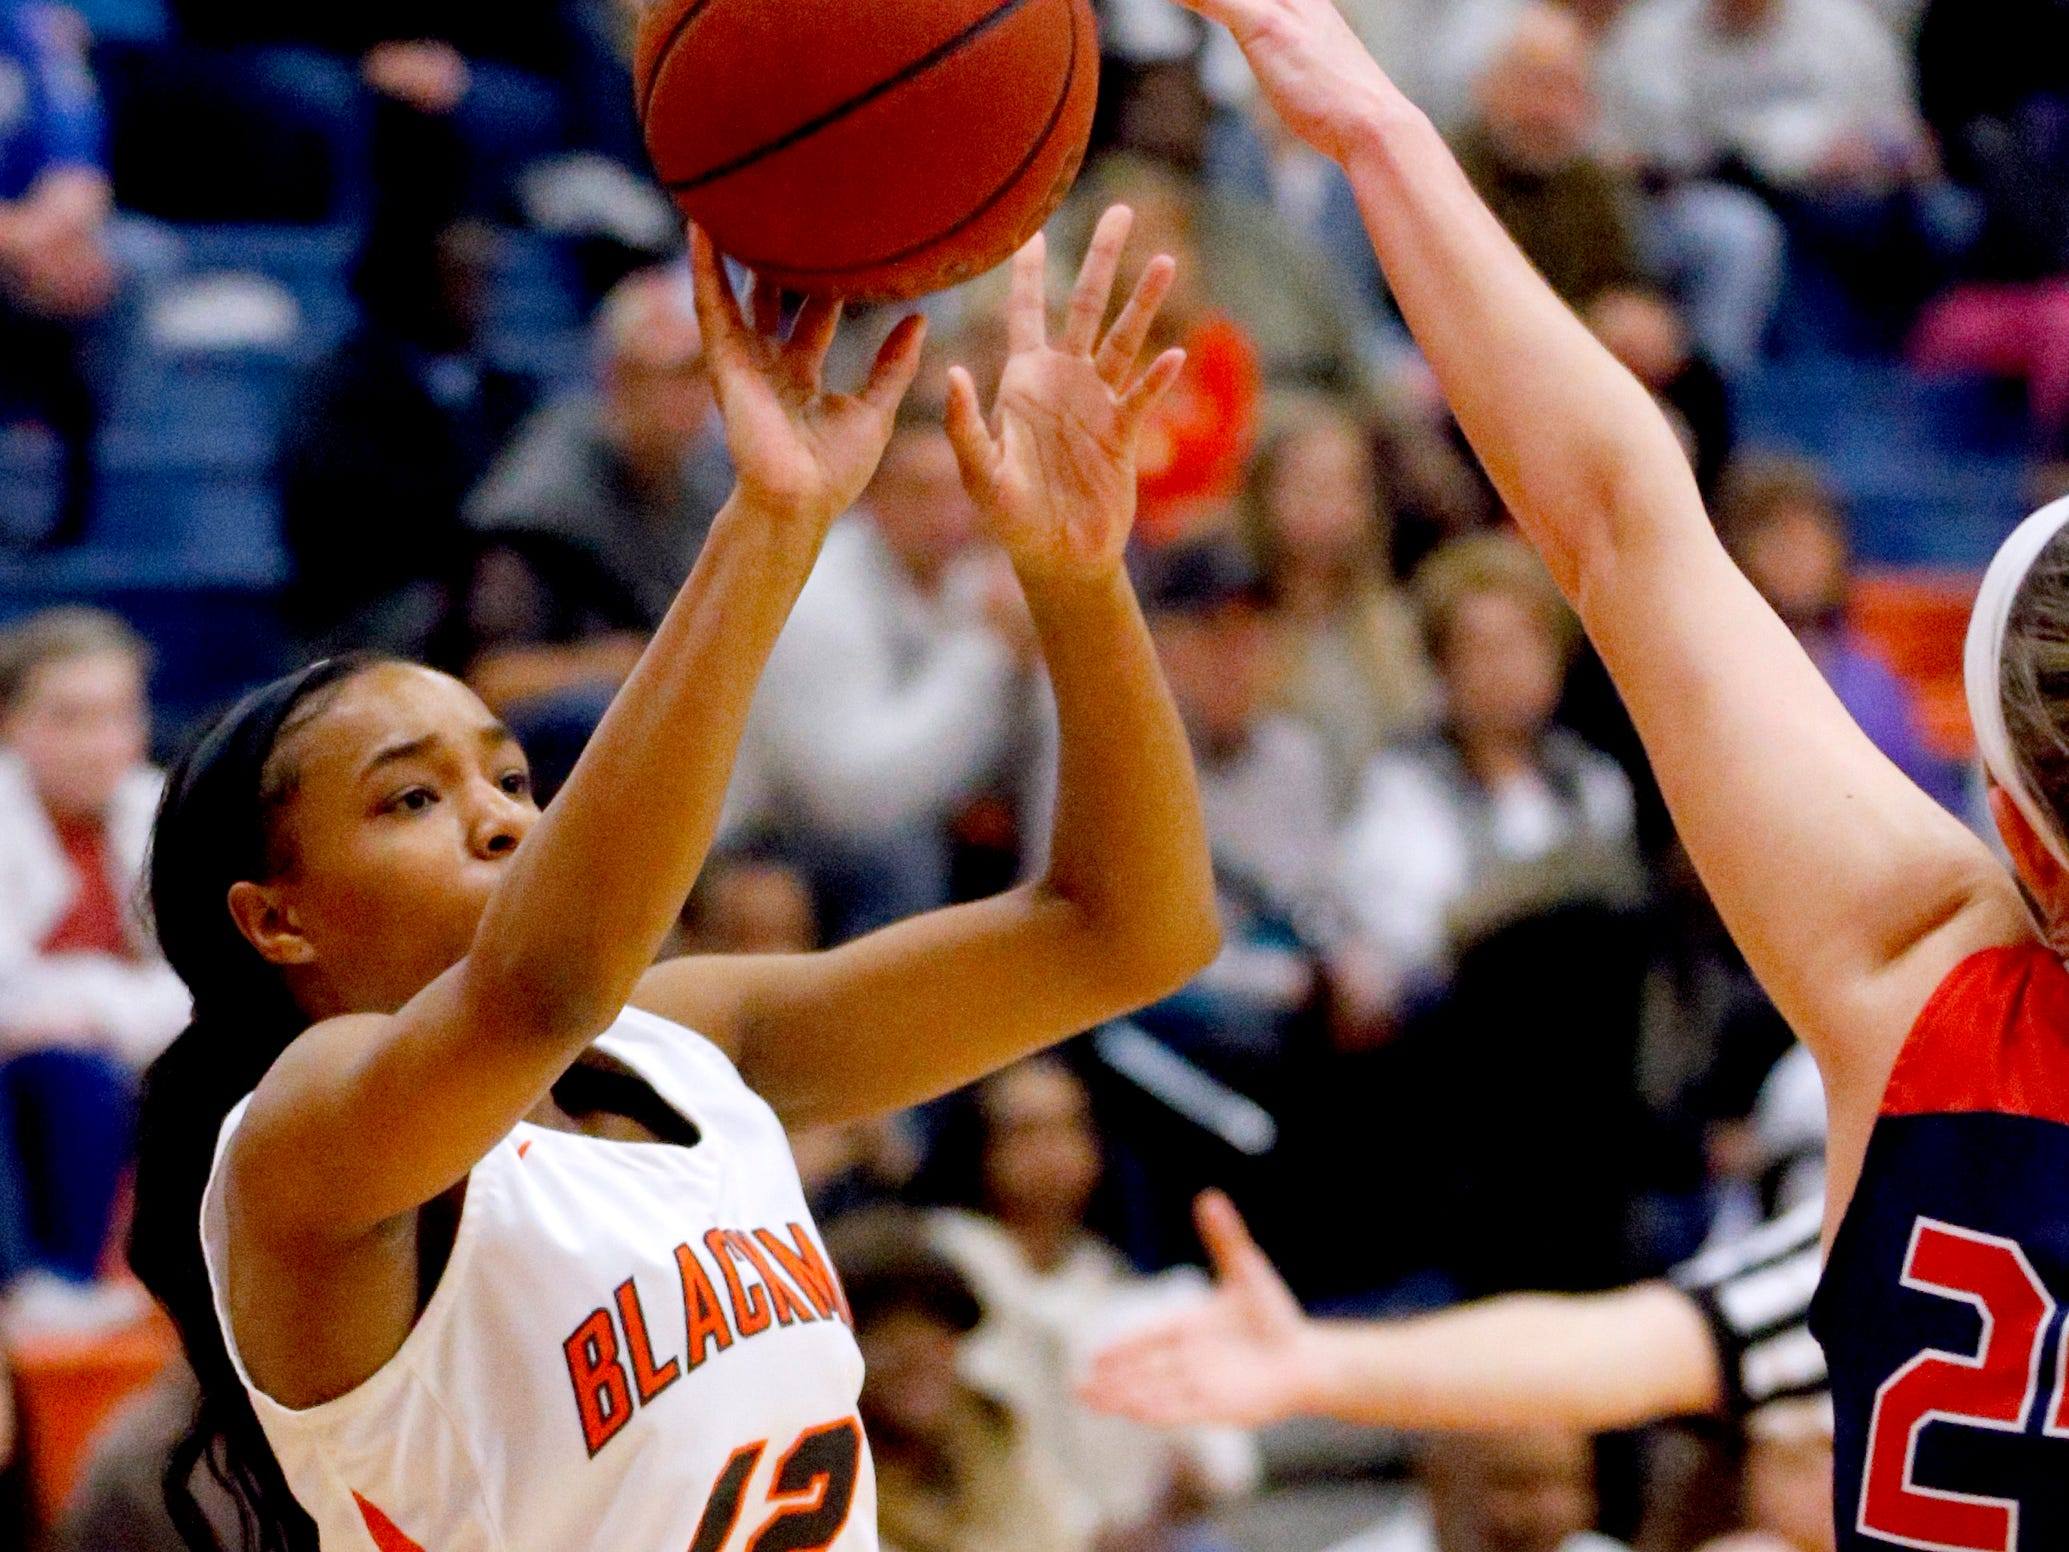 Blackman's Nia Vanzant (12) shoots the ball as Oakland's Olivia Perry (24) defends her on Friday, Feb. 8, 2019.